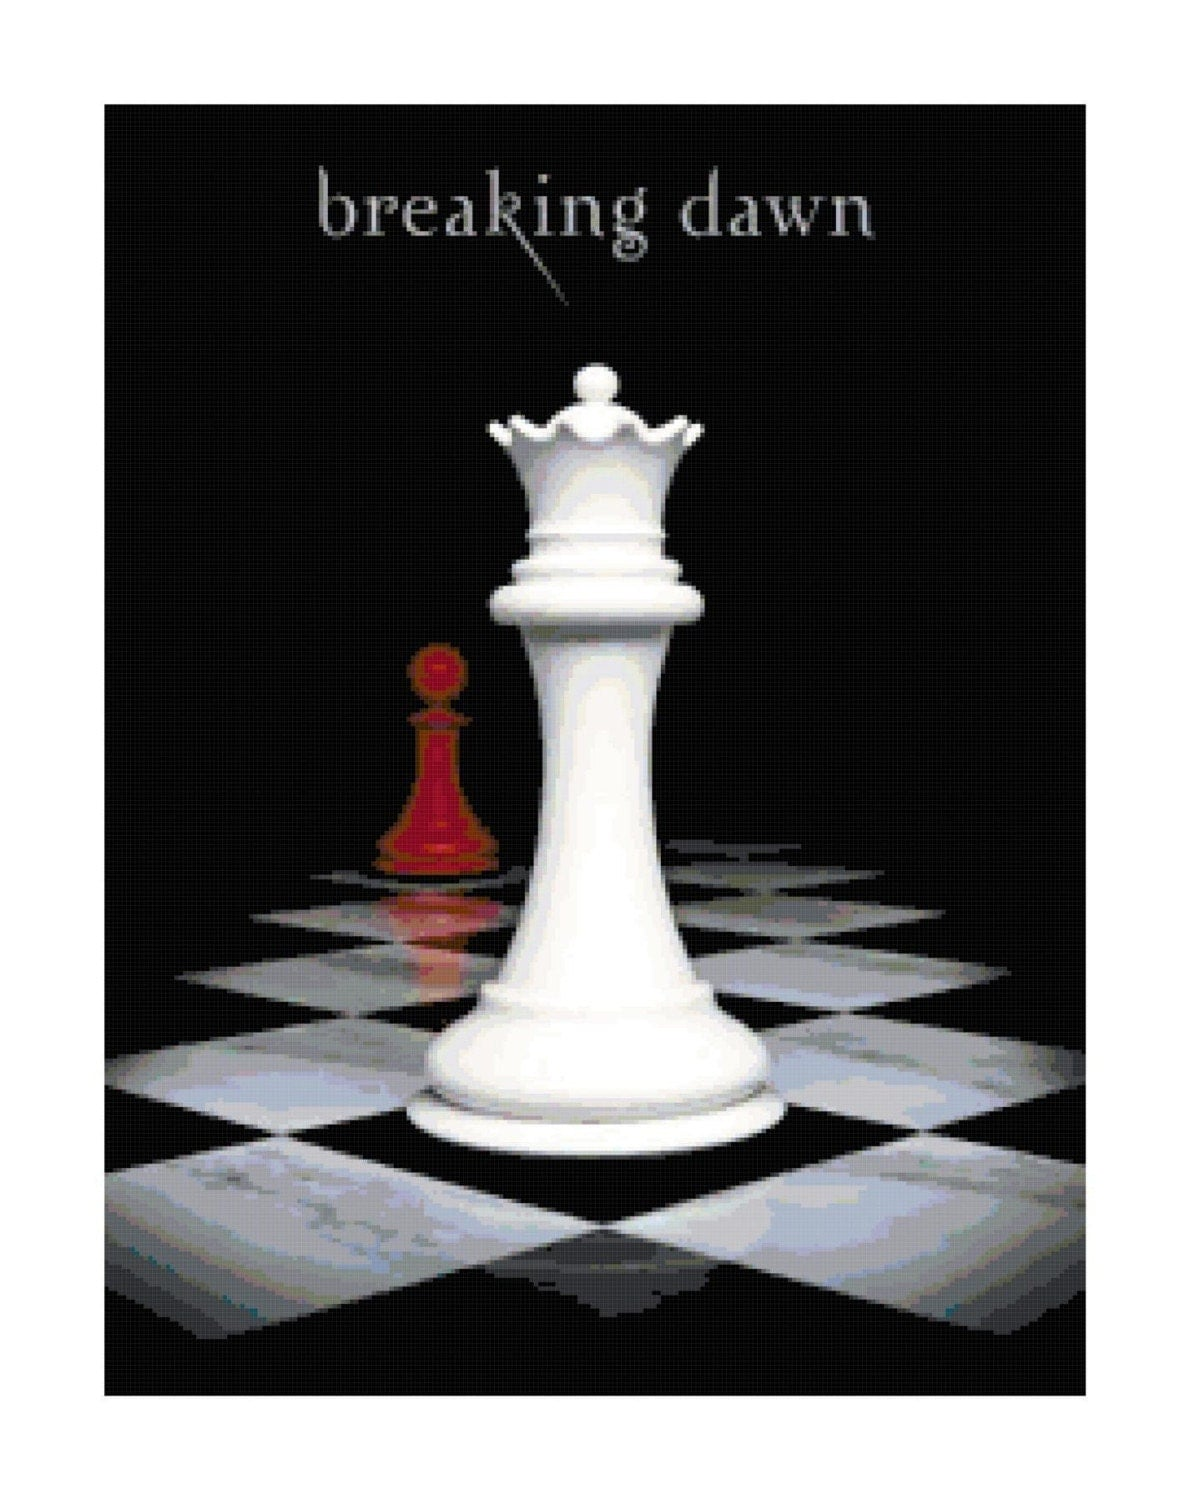 Breaking Dawn Book Cover Drawing : Twilight s breaking dawn book cover crossstitch pattern